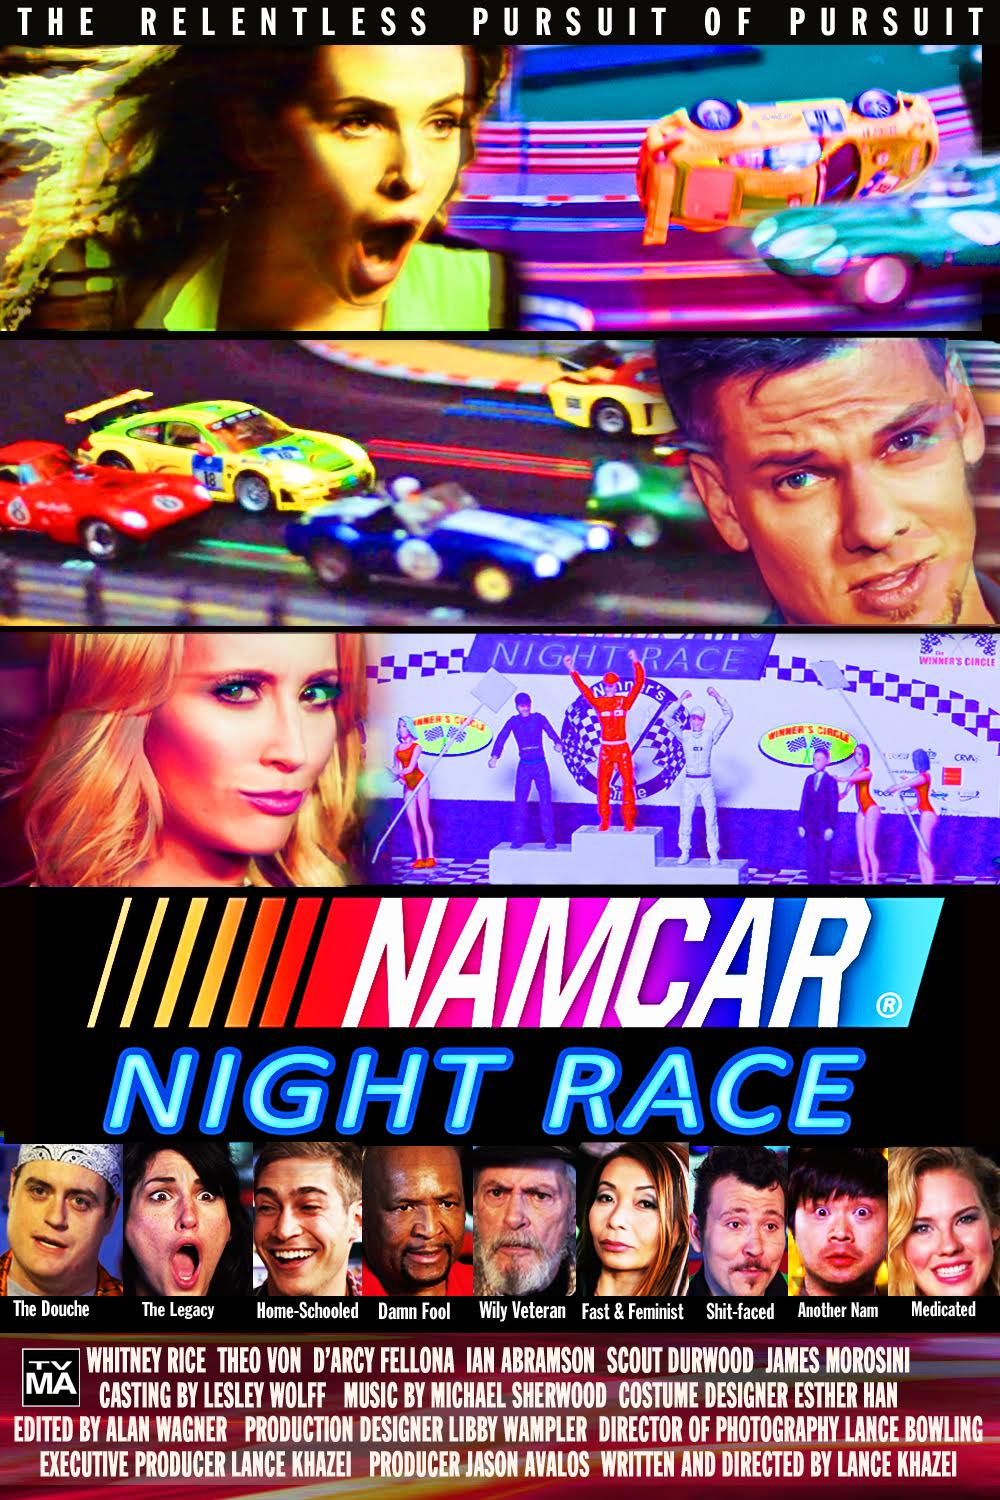 NAMCAR Night Race